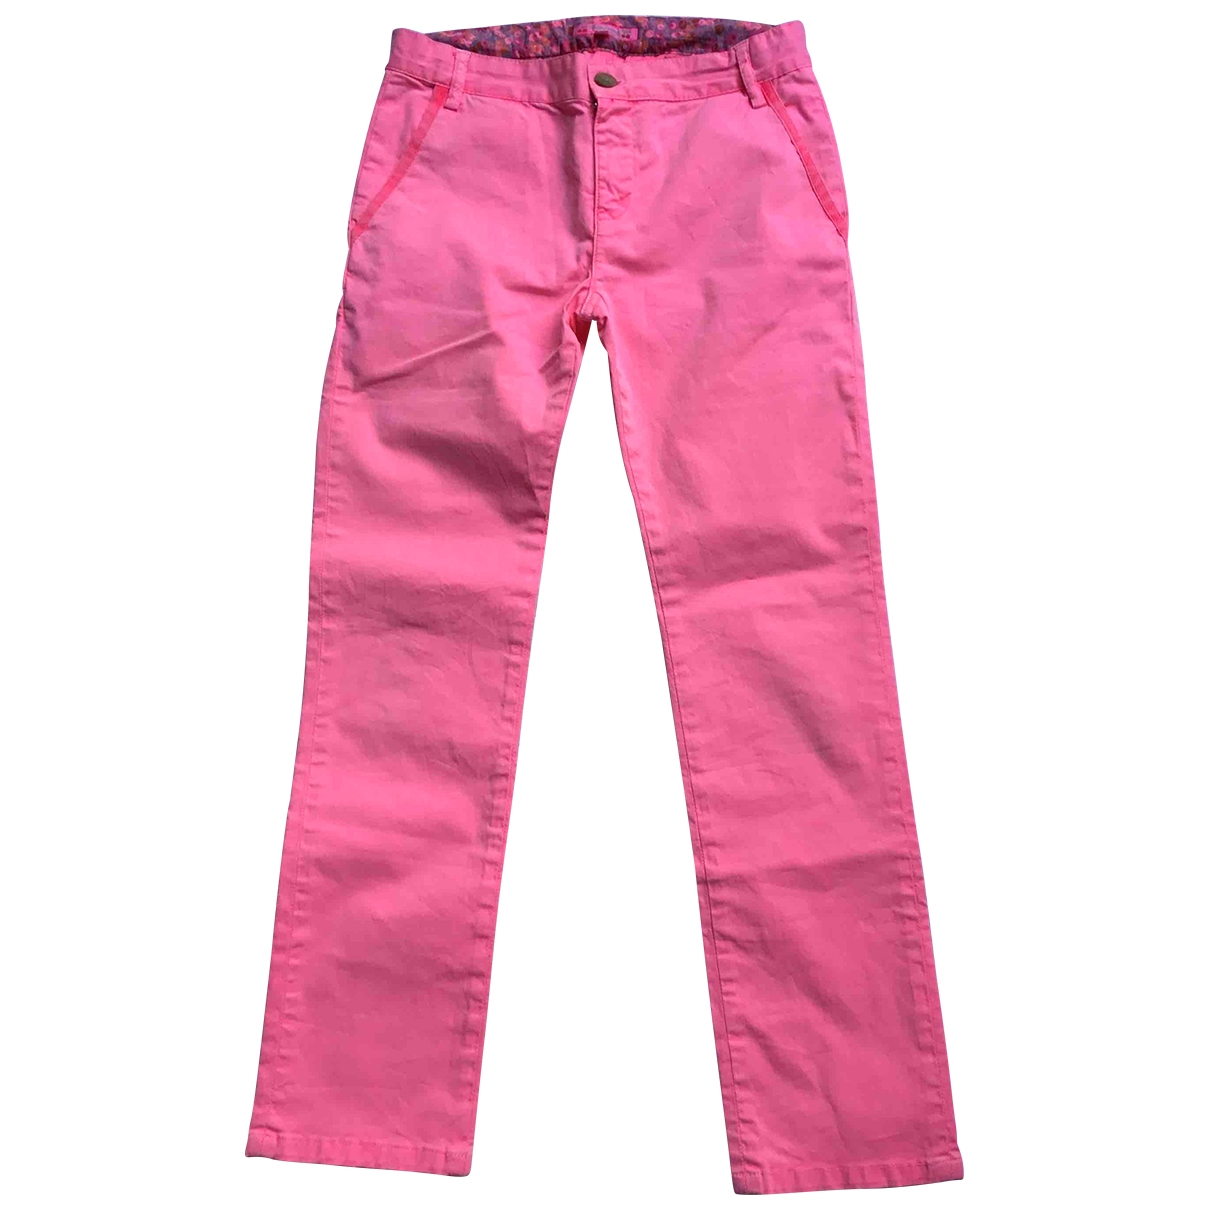 Bonpoint \N Pink Cotton Trousers for Kids 12 years - XS FR